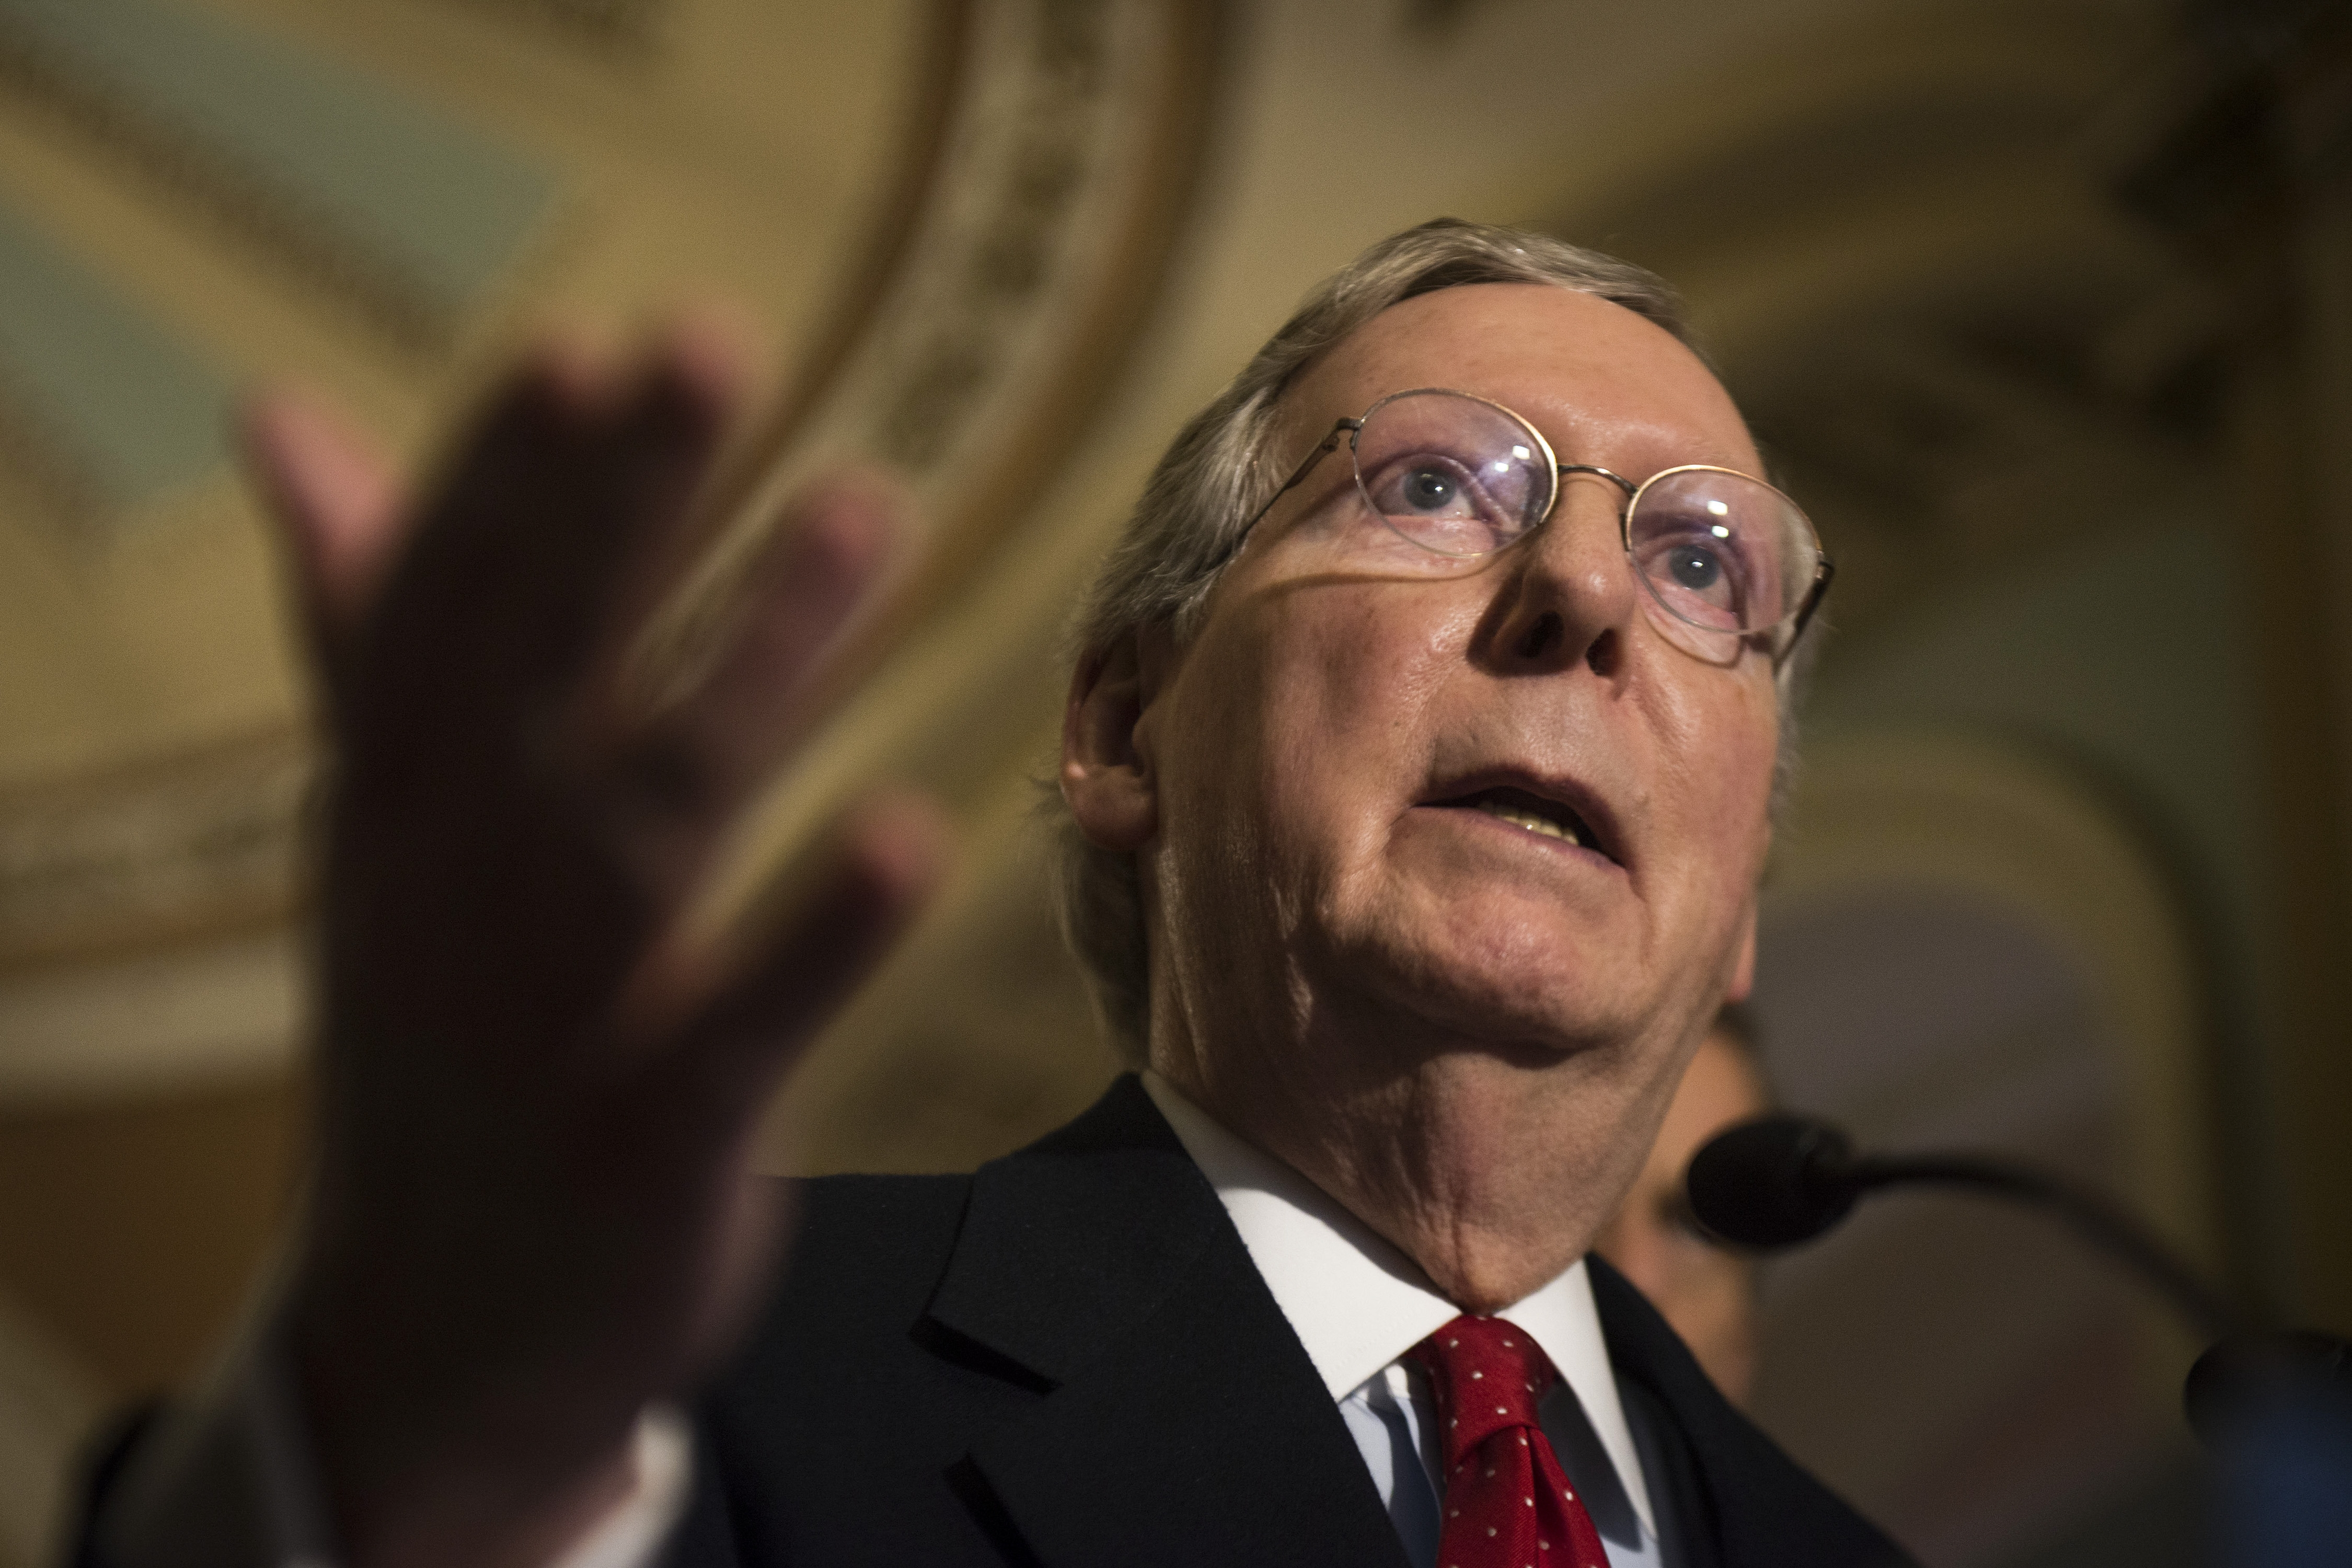 Sen. Mitch McConnell of Kentucky and other Republican leaders are challenging conservative advocacy groups in an aggressive effort to undermine their credibility.